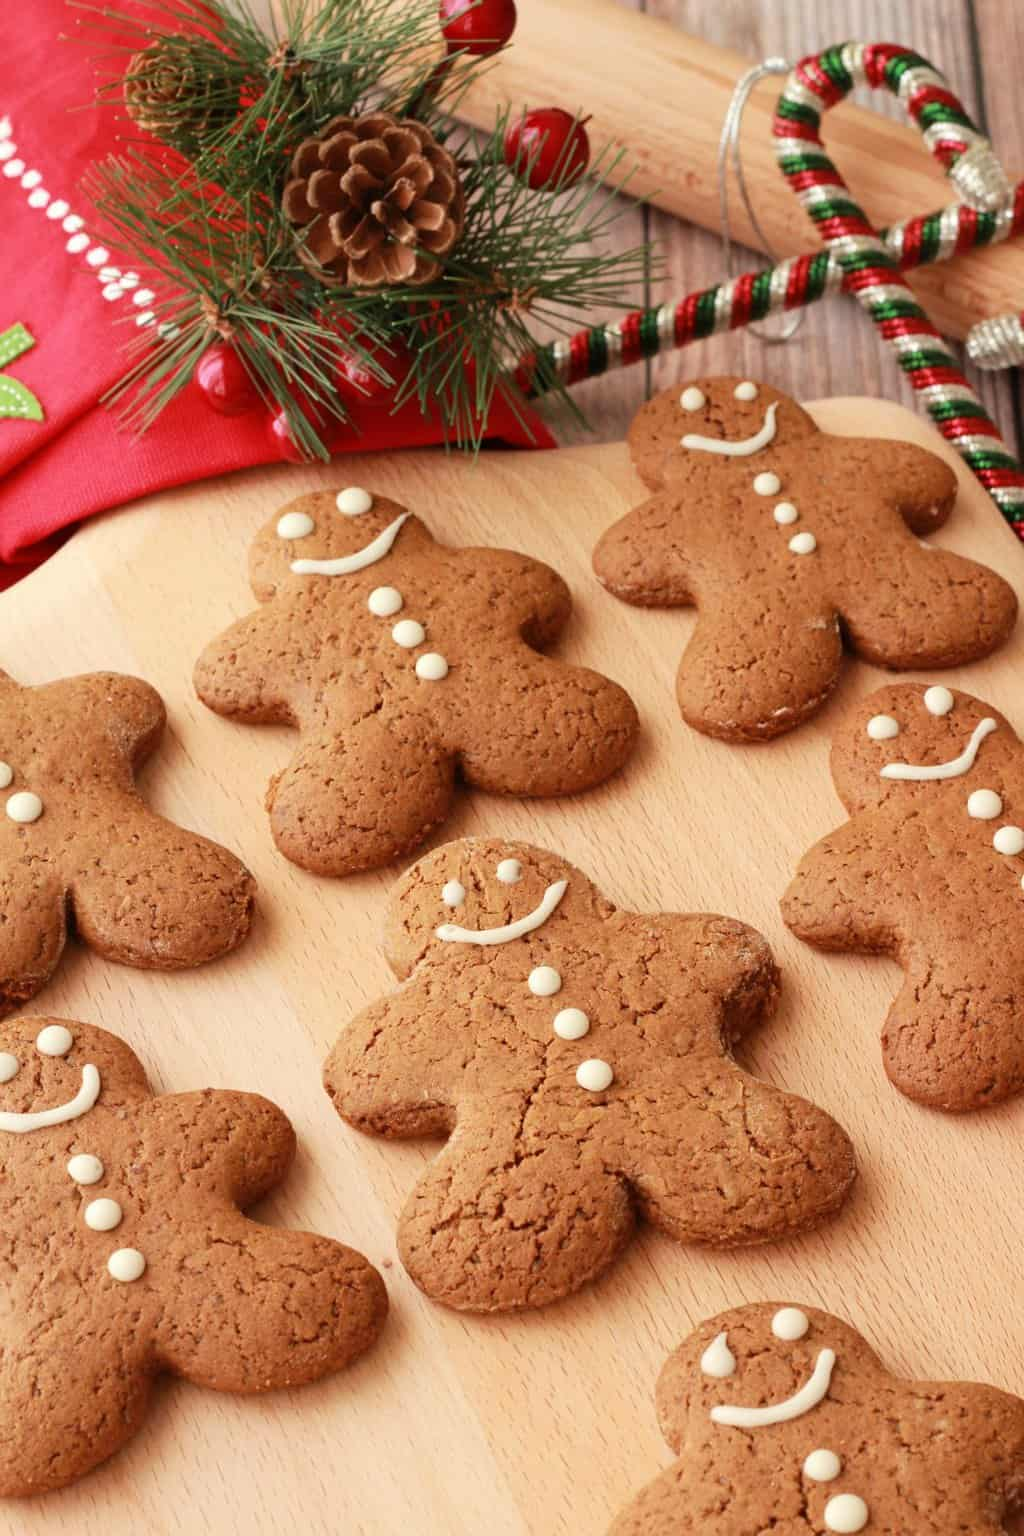 Vegan gingerbread cookies on a wooden board with Christmas decorations in the background.